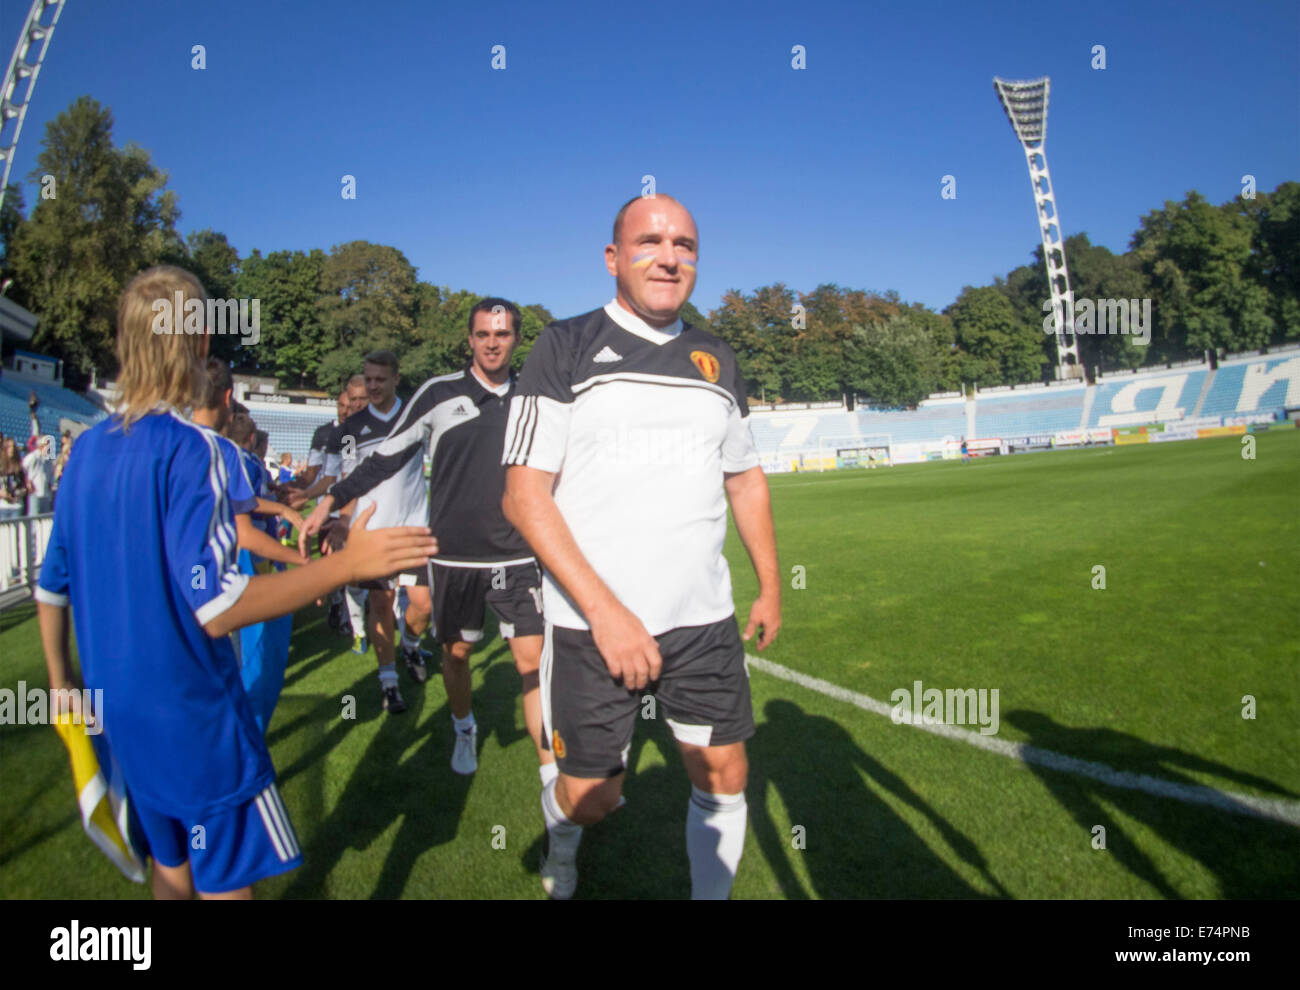 Kiev, Ukraine. 6th Sep, 2014. Team stars out on the field. --In a friendly match of pop stars, movies stars, businessmen,and - Stock Image